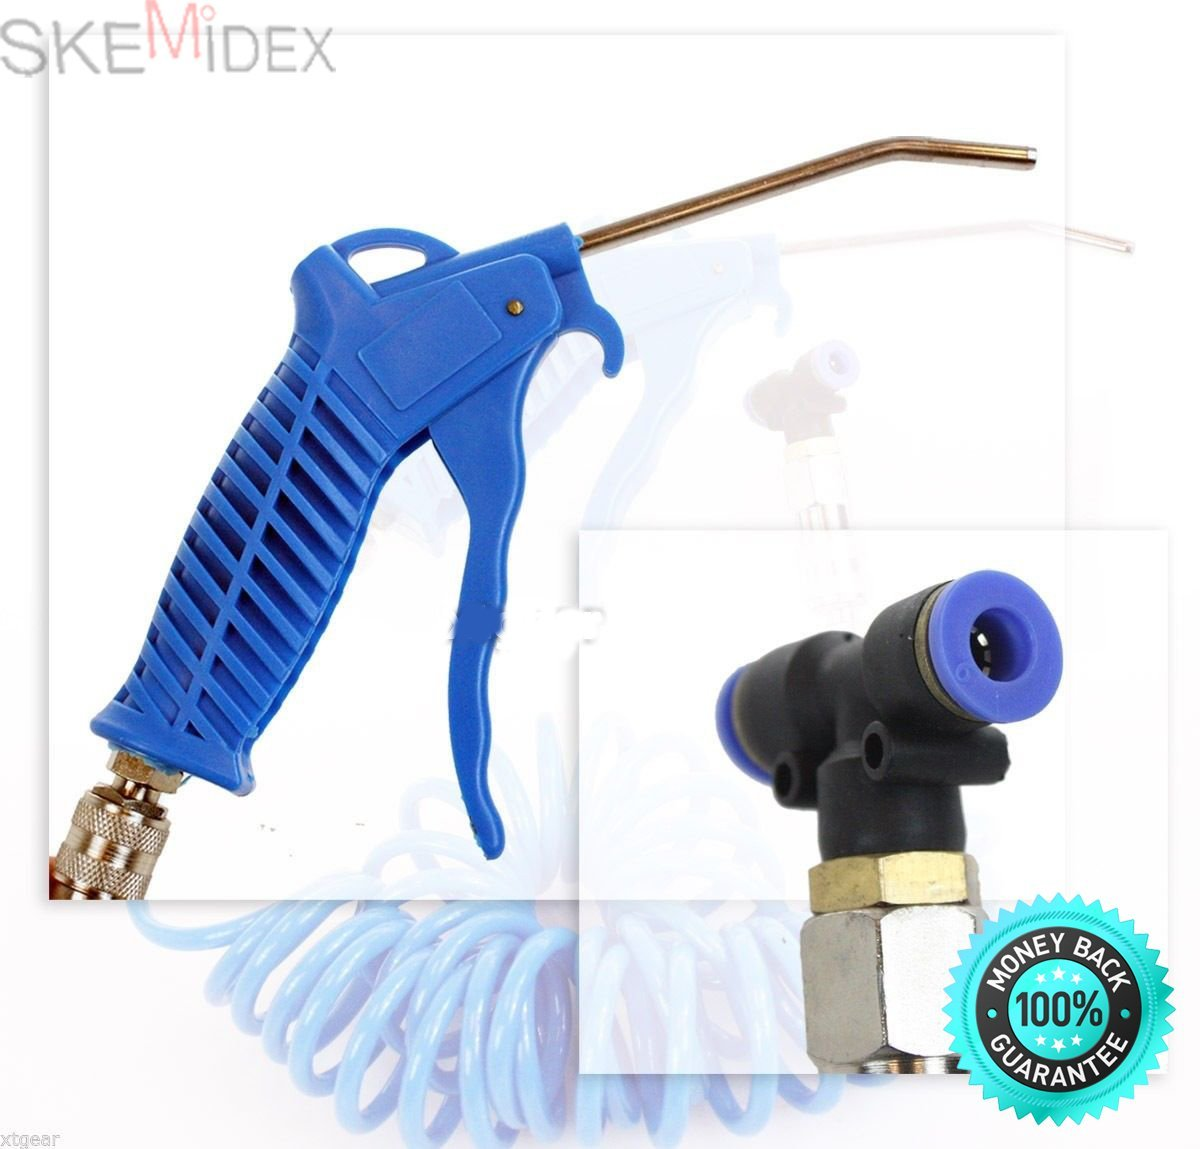 SKEMiDEX---Professional Heavy Duty Air Duster Blow Gun Cleaner Kit Lorry Cleaning Nozzle Nw. Professional Heavy Duty Air Duster Blow Gun Cleaner Kit Lorry Cleaning Nozzle New